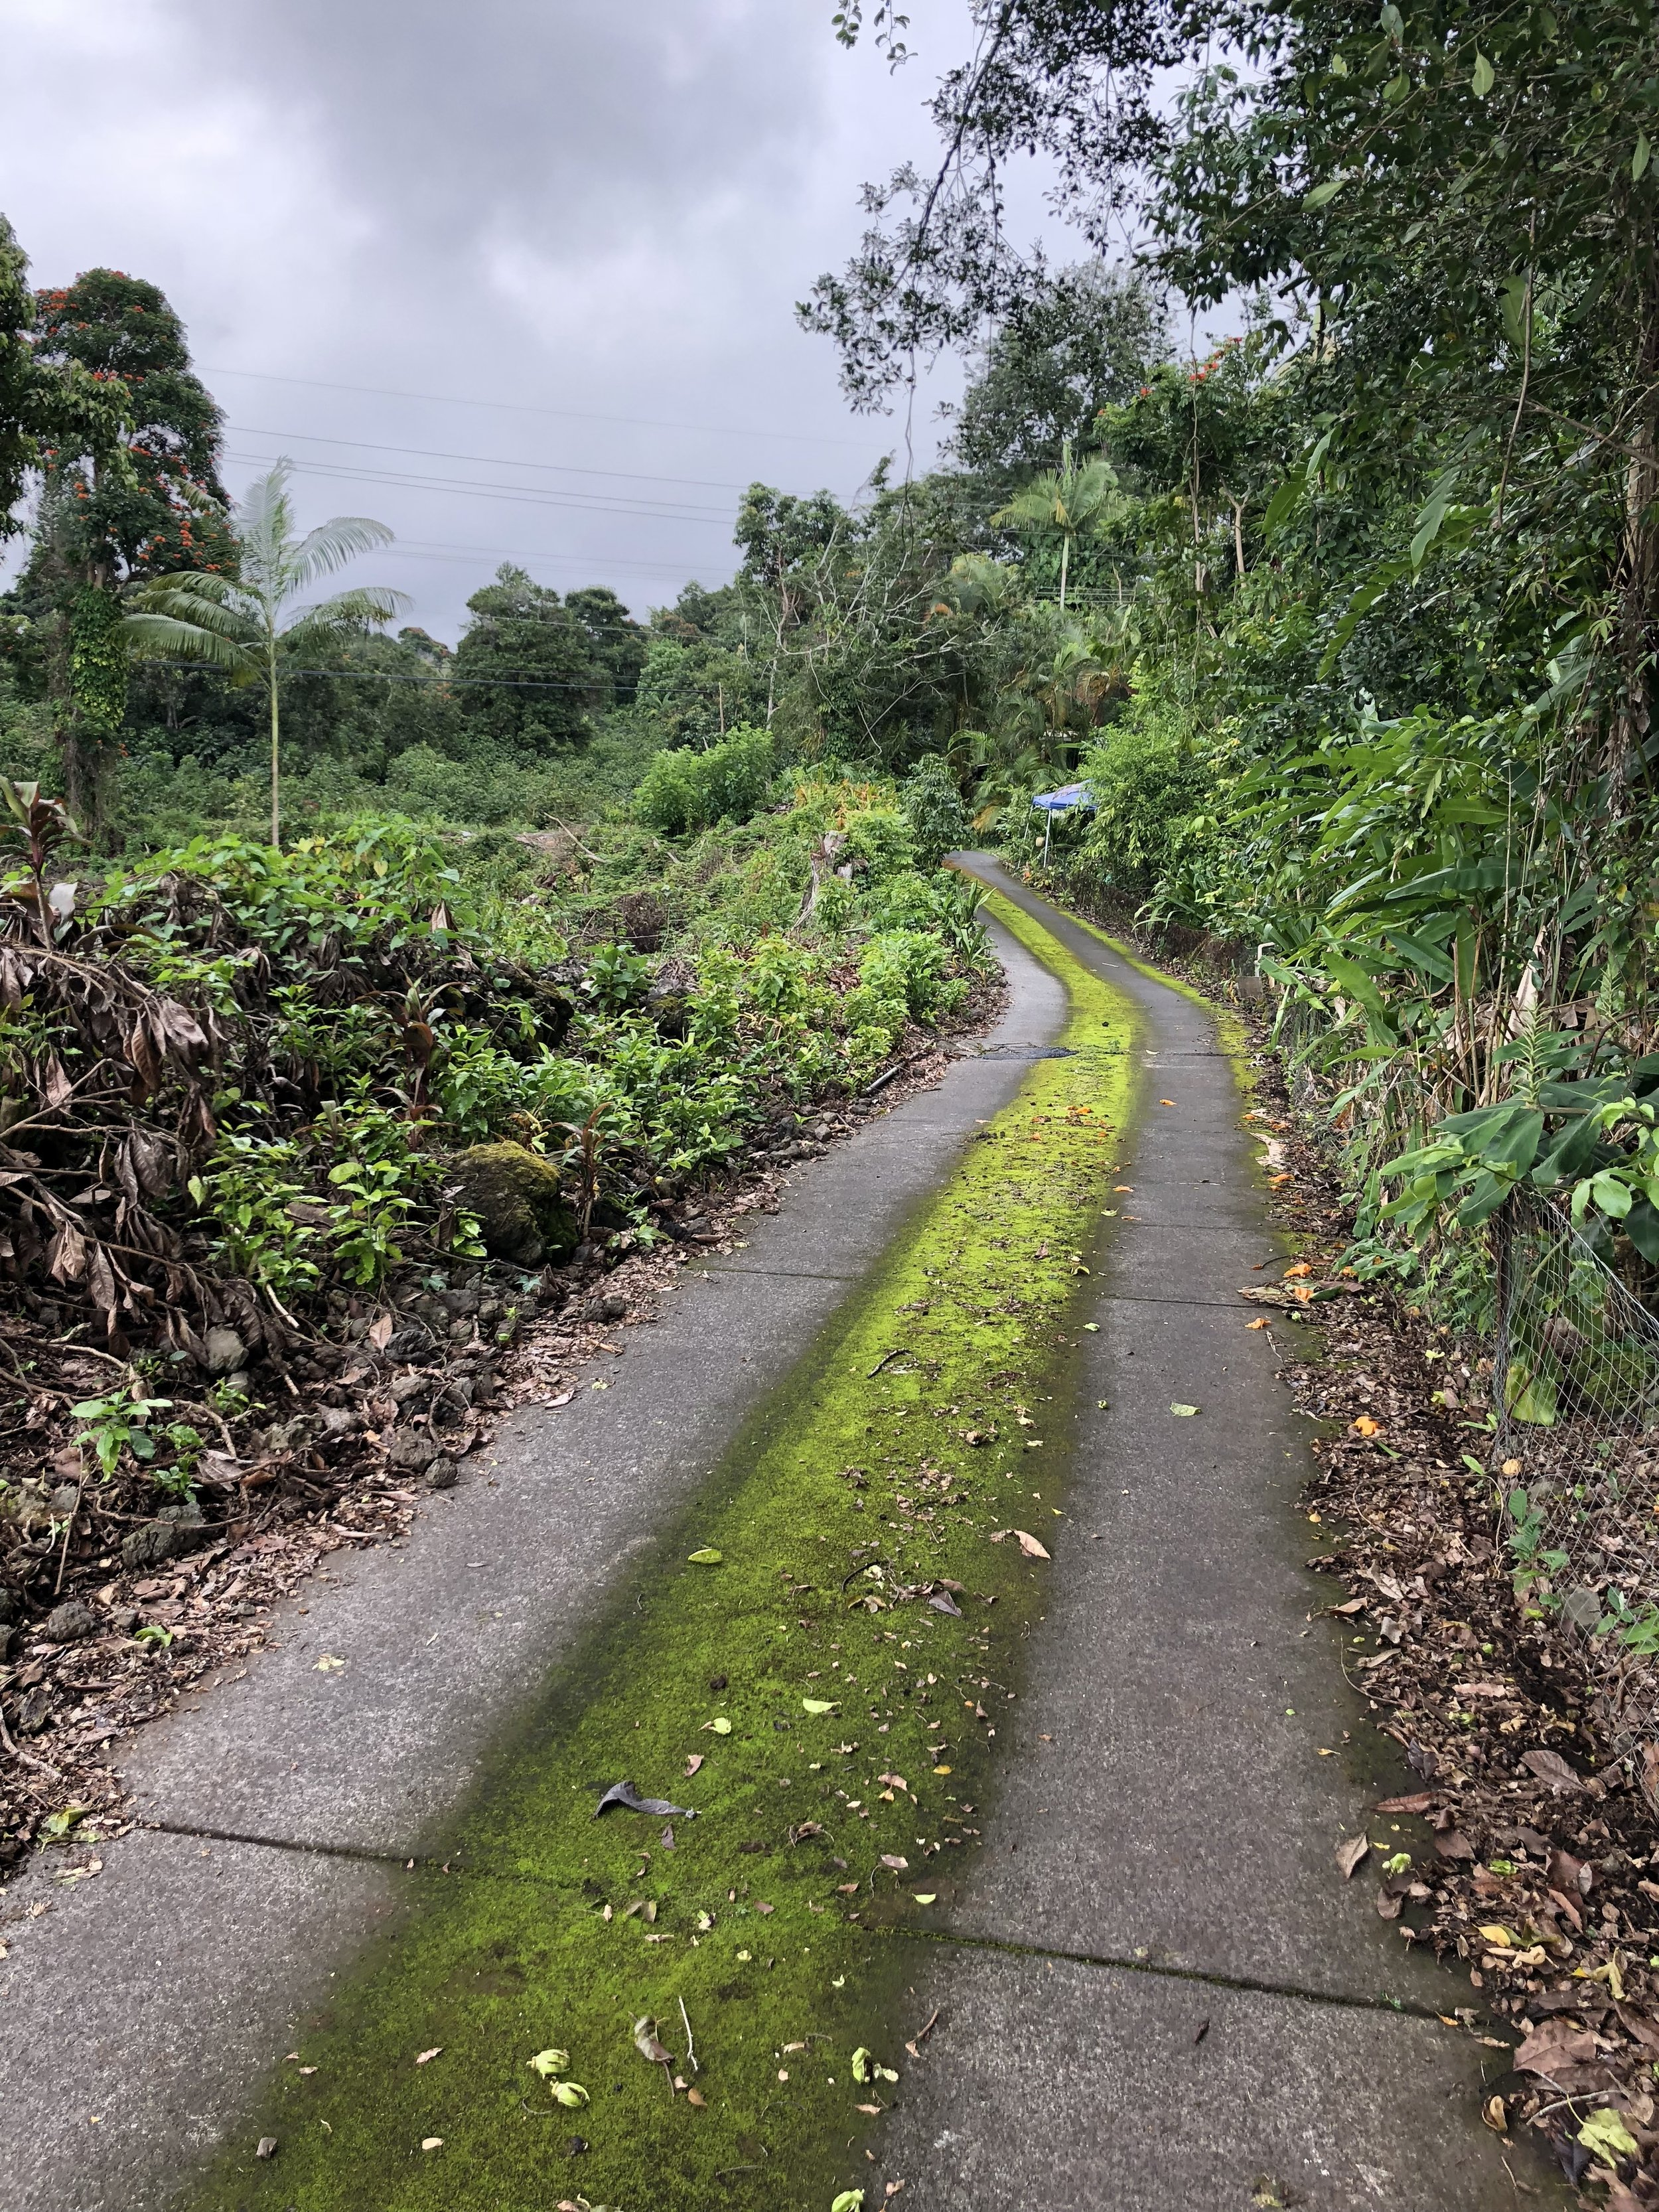 The path to and from my coffee farm rental house.